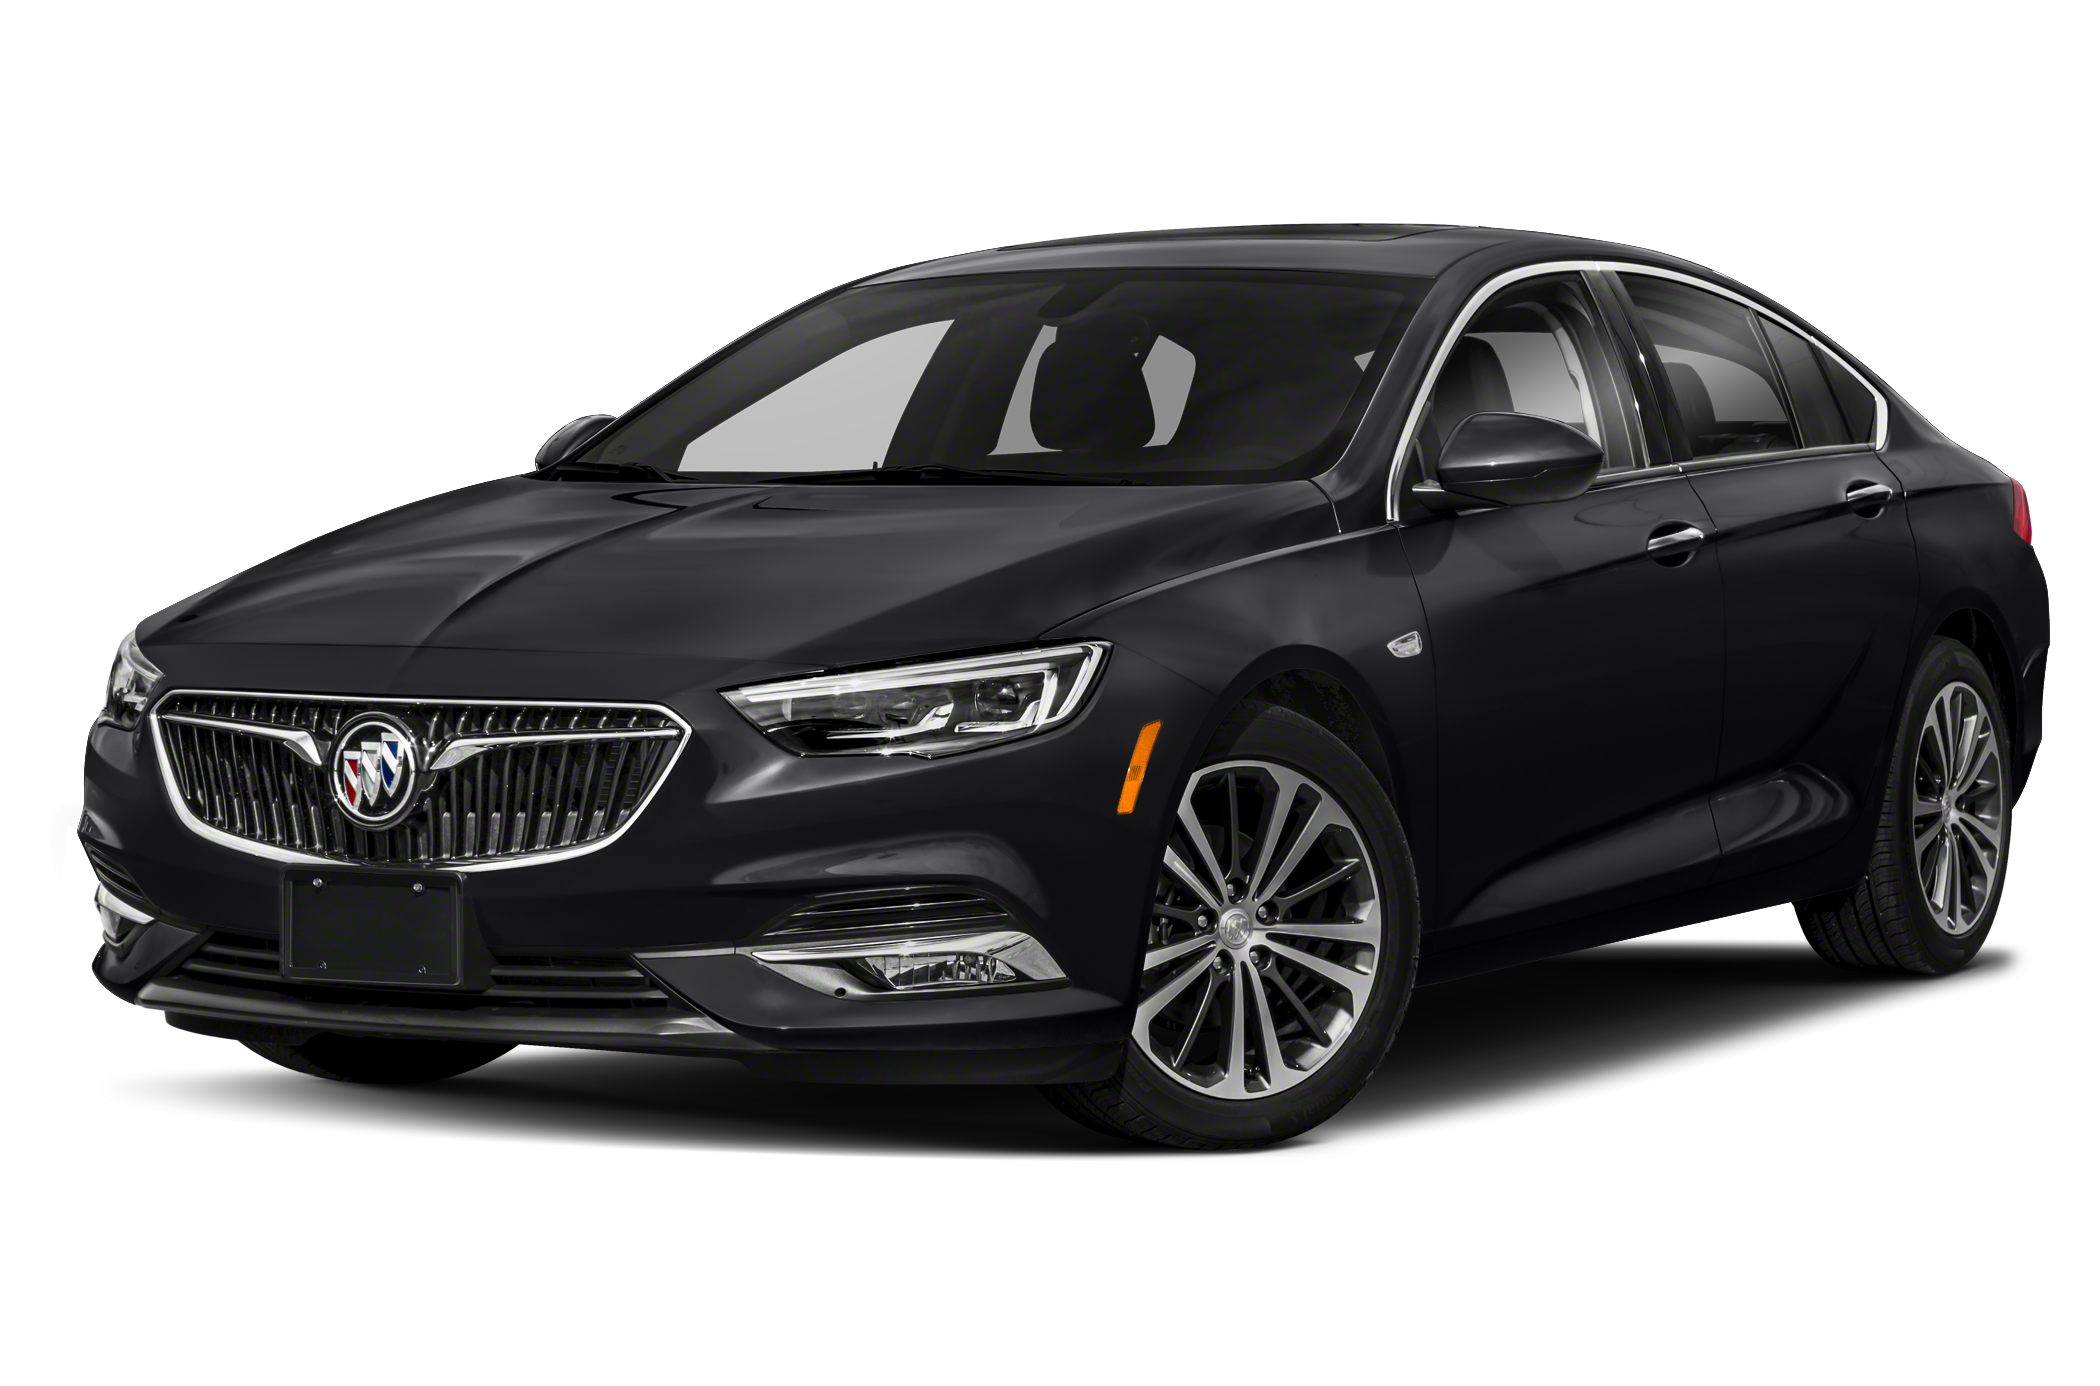 2018 Buick Regal Sportback Preferred Featuring a push button start backup camera braking assist